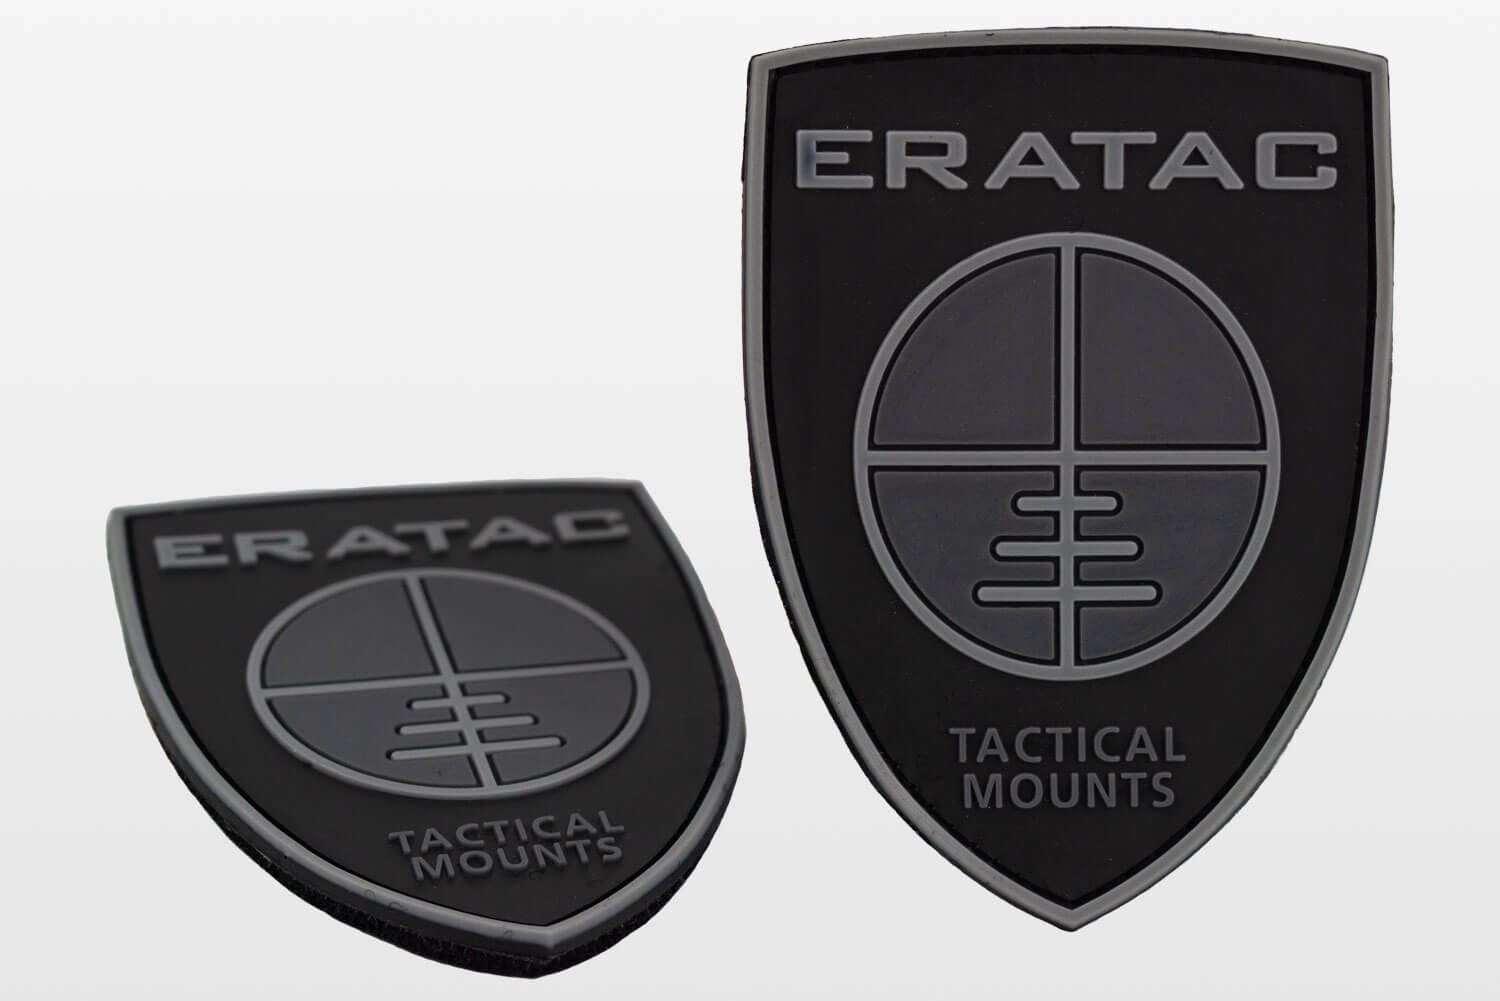 ERATAC - Tactical Mounts merch-patch Merchandise